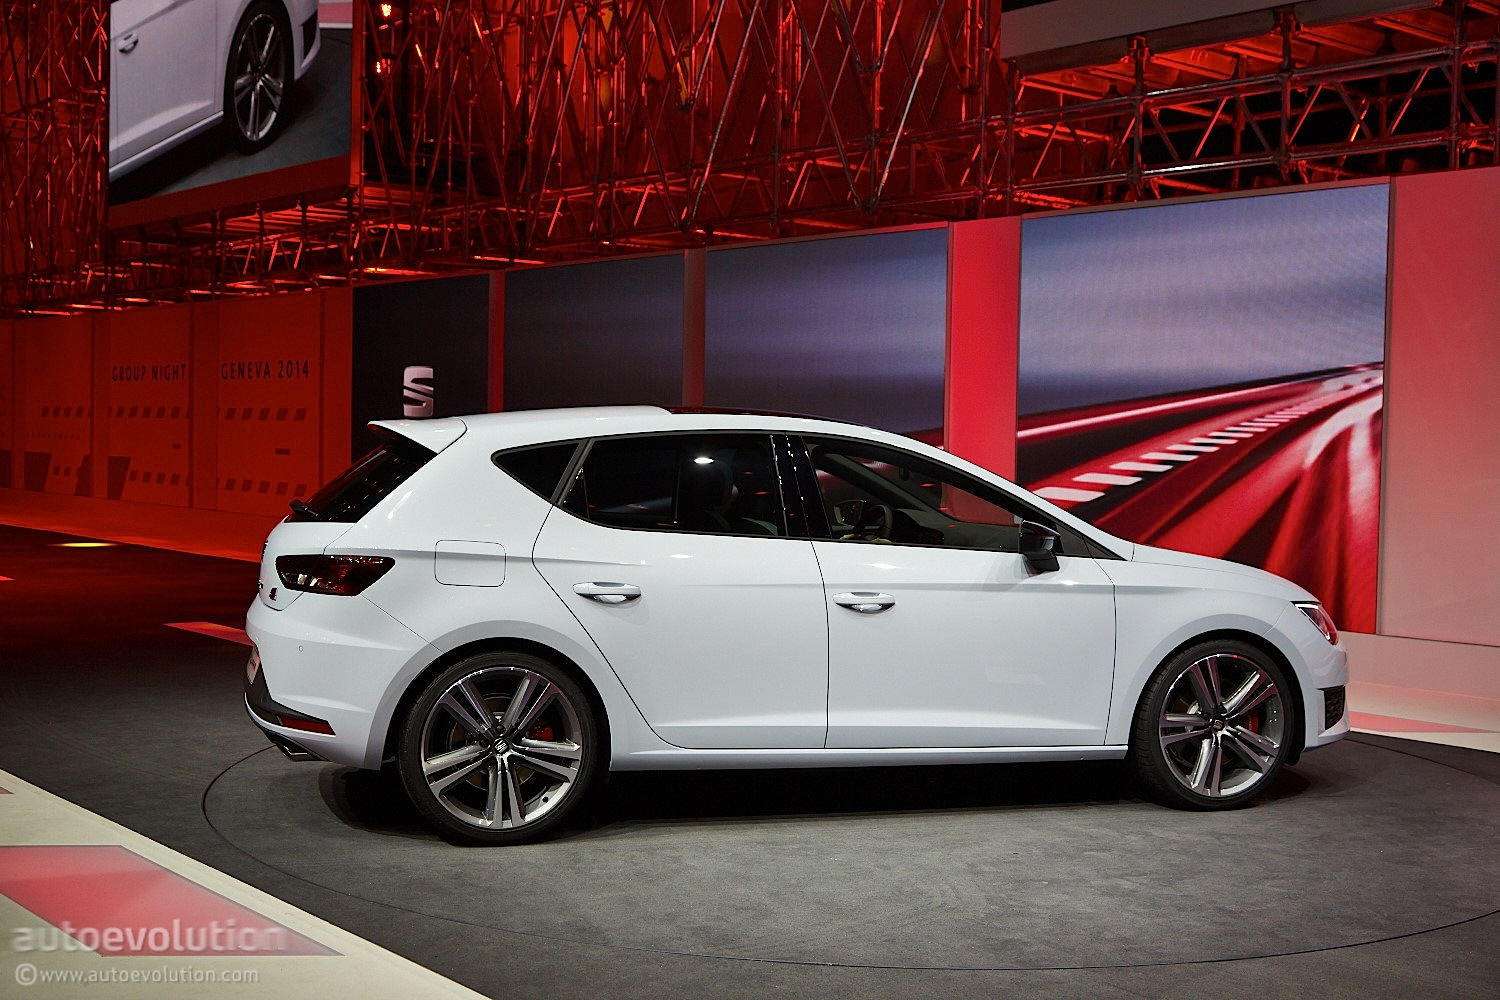 2014 seat leon cupra is the hottest of the hot hatches live photos autoevolution. Black Bedroom Furniture Sets. Home Design Ideas